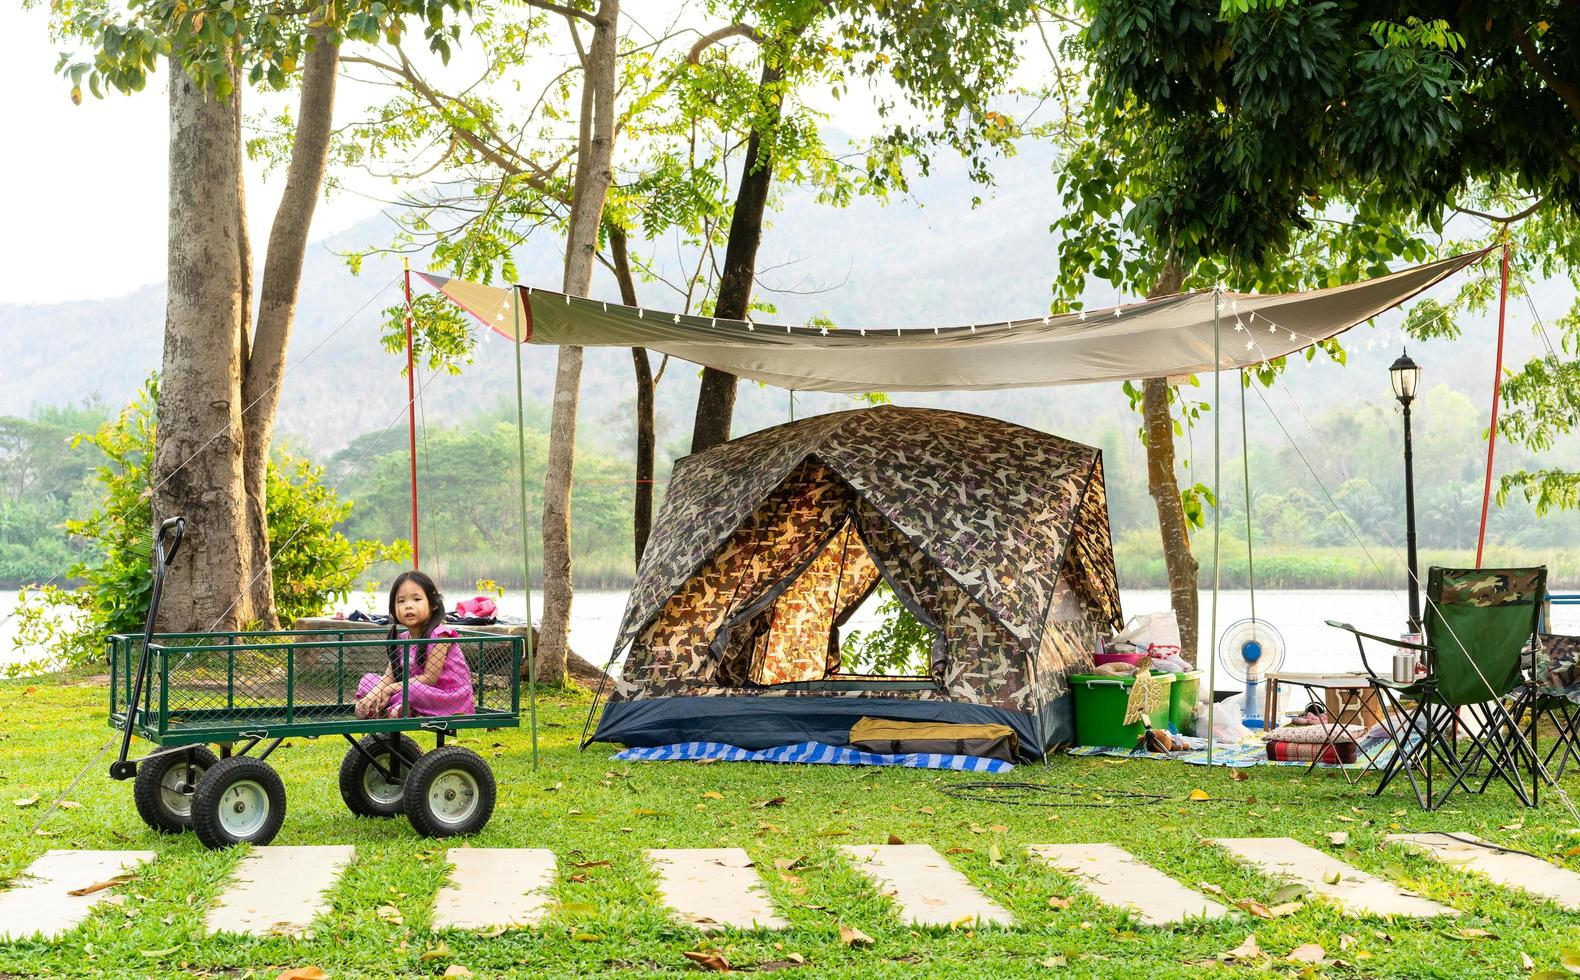 Young Asian girl in wagon at campsite photo